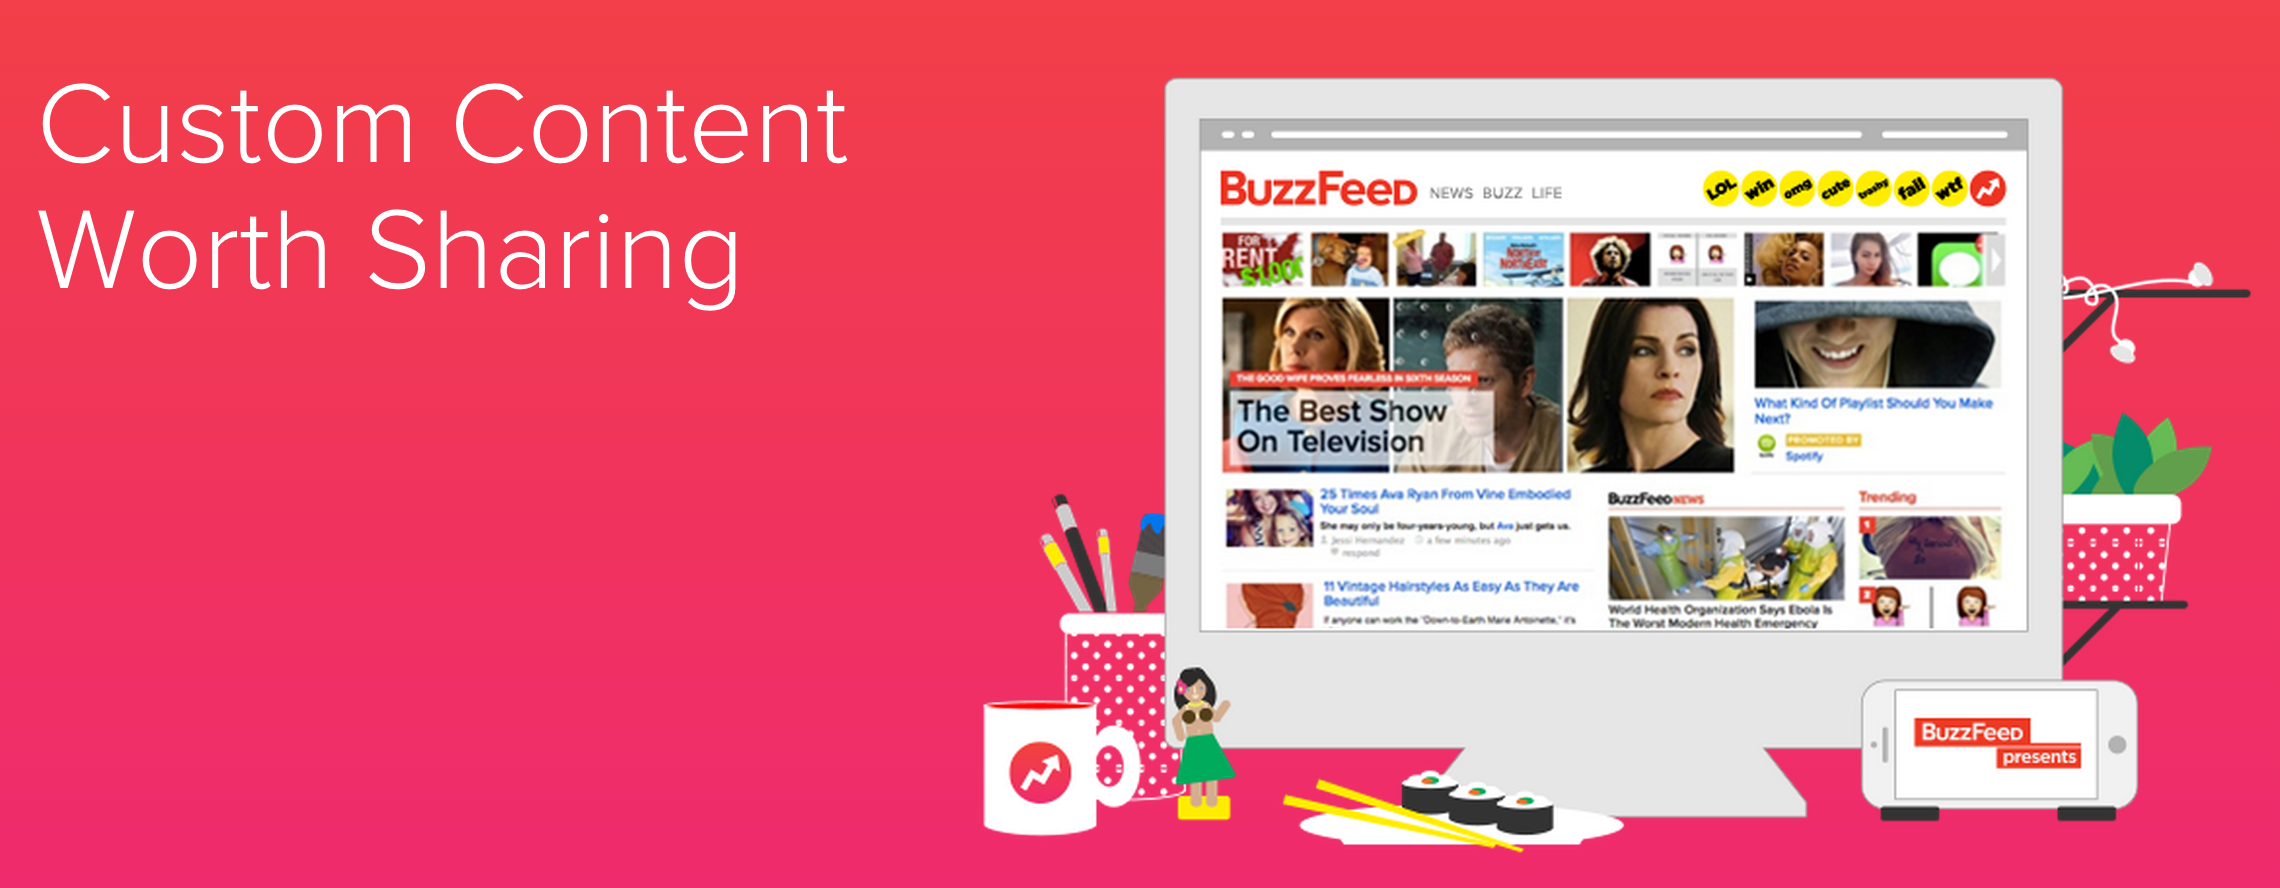 buzzfeed native advertising